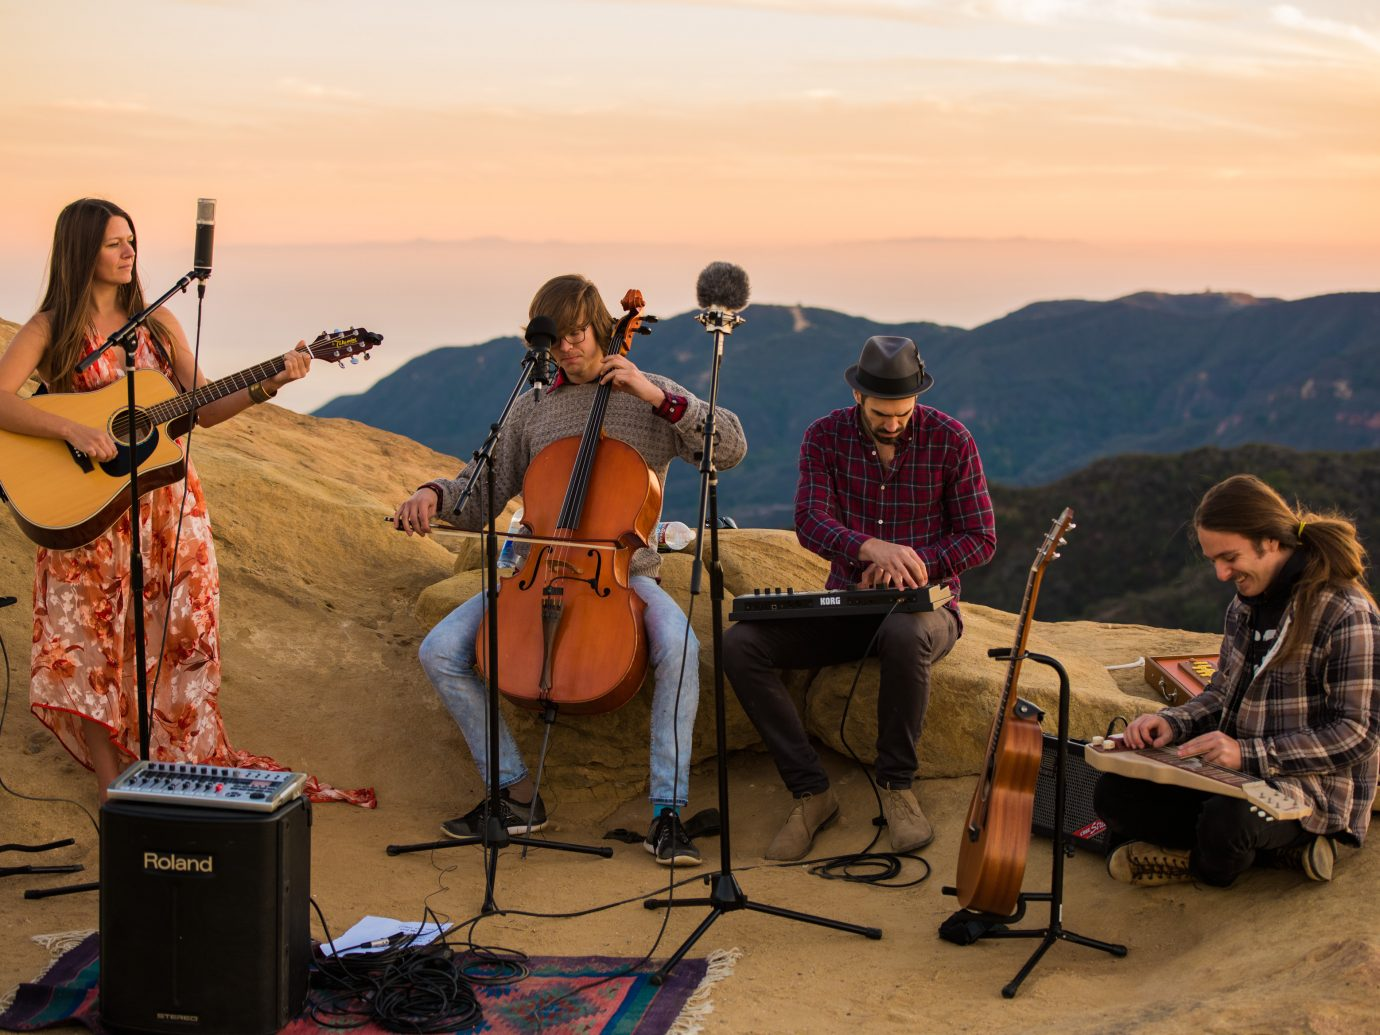 a band performing during sunset on mountains